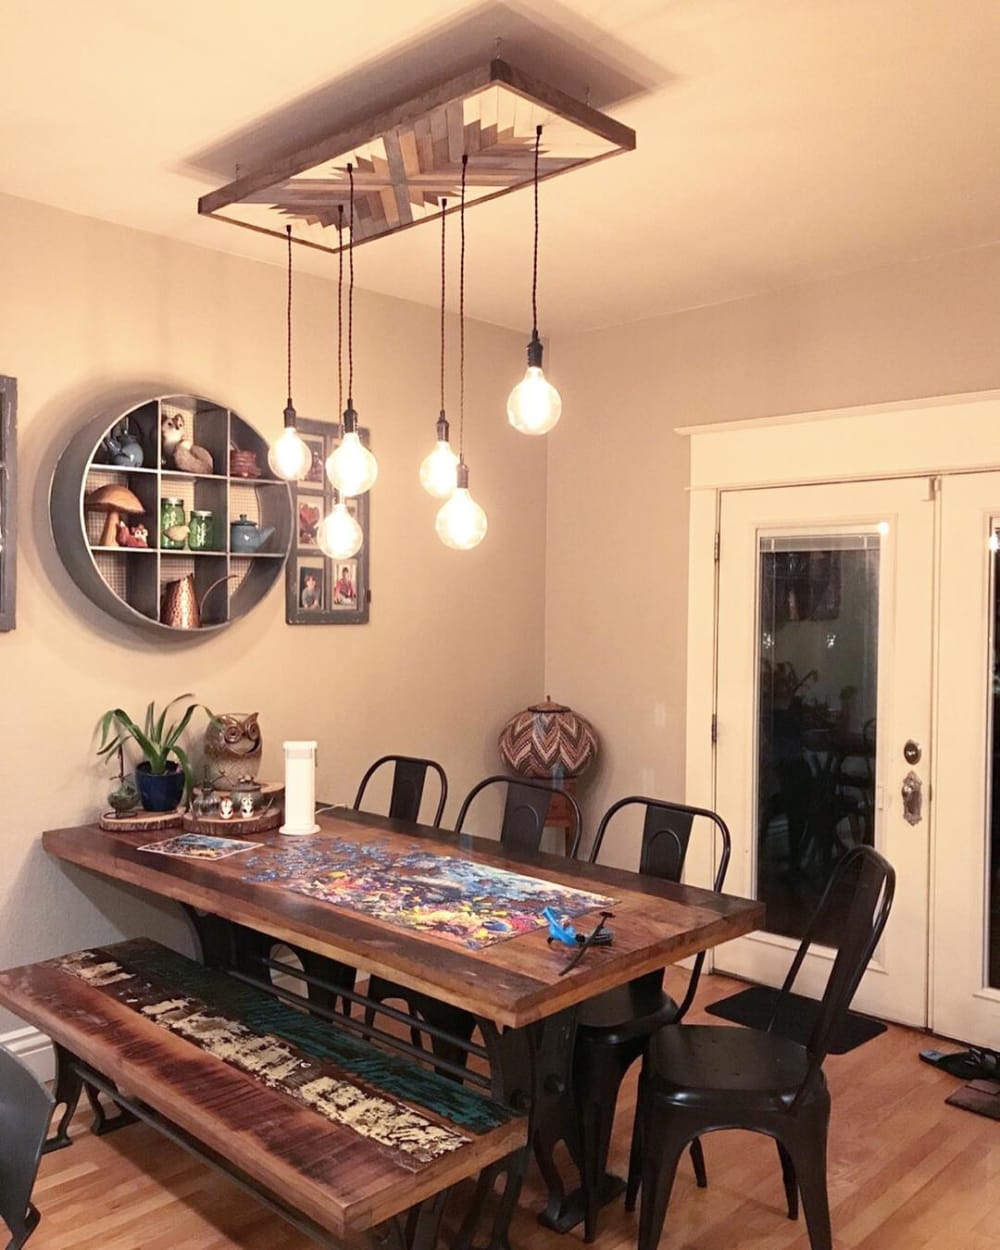 Wooden sculptural light fixture hanging bulbs